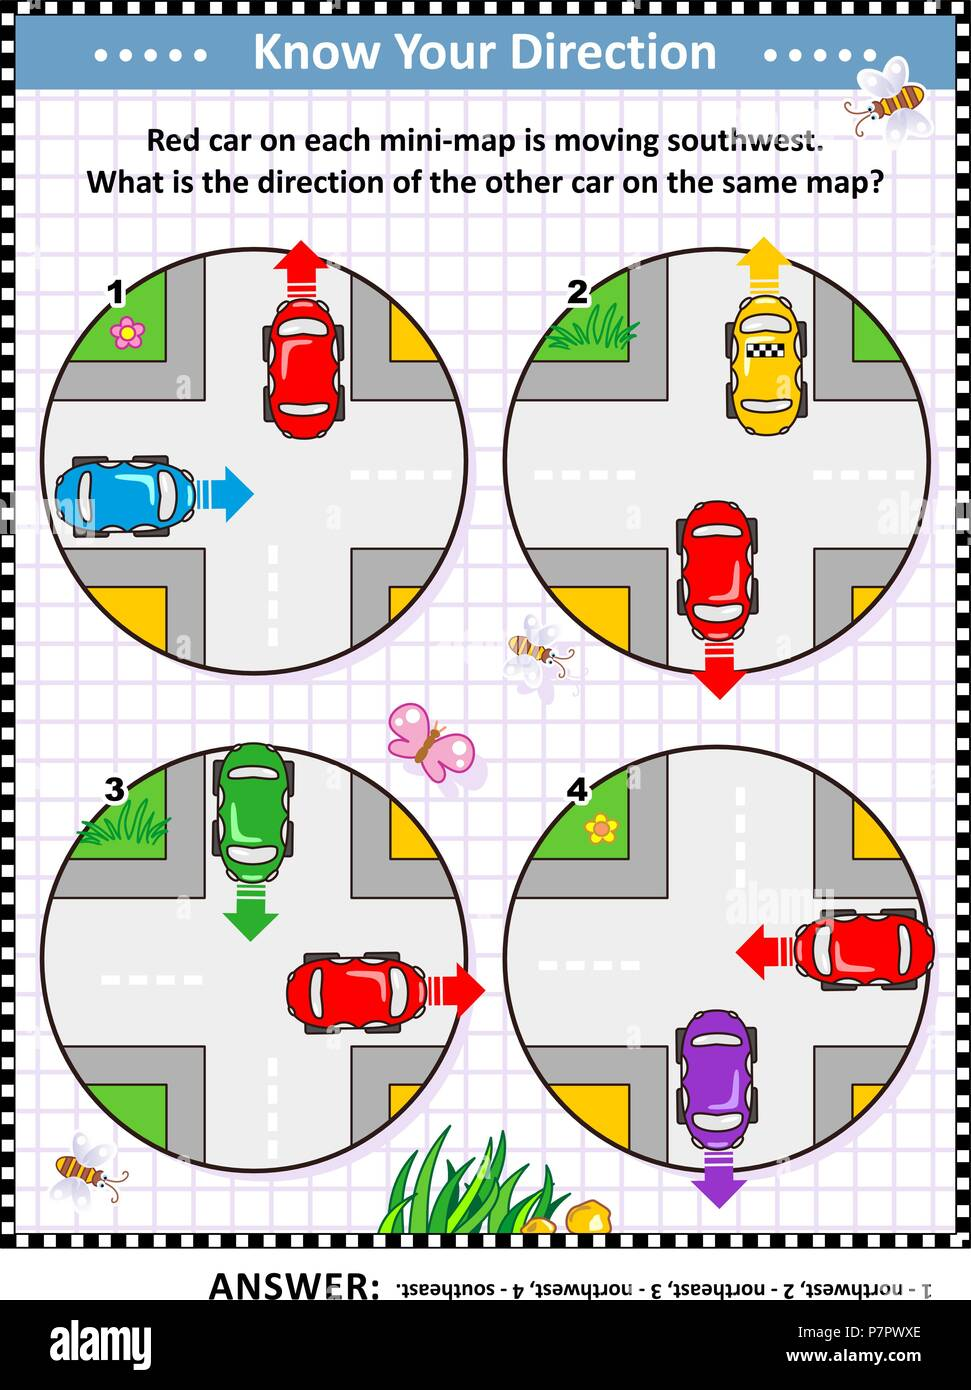 Map skills learning and training activity page or worksheet: Red car on each mini-map is moving southwest. What is the direction of the other car? - Stock Vector